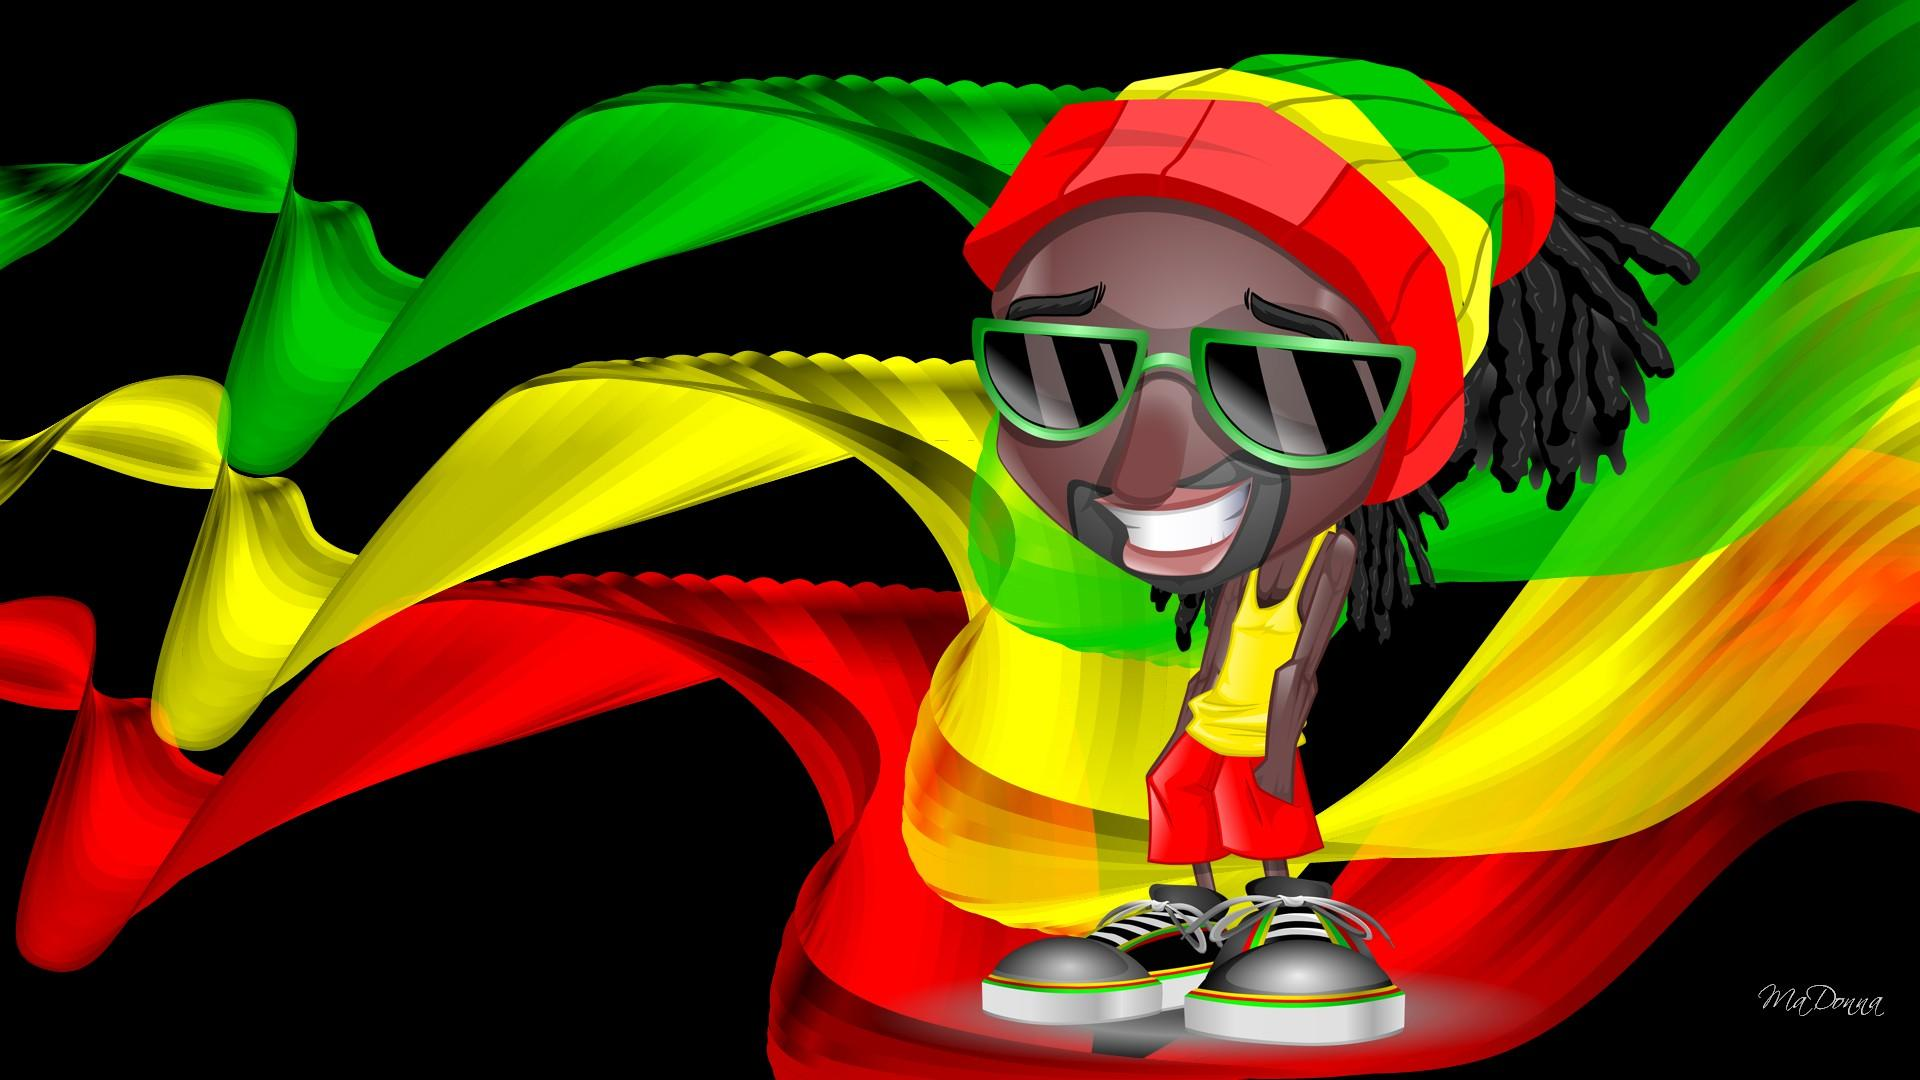 Wallpaper iphone rasta - Rasta Wallpaper Hd Wallpaper Hd Base